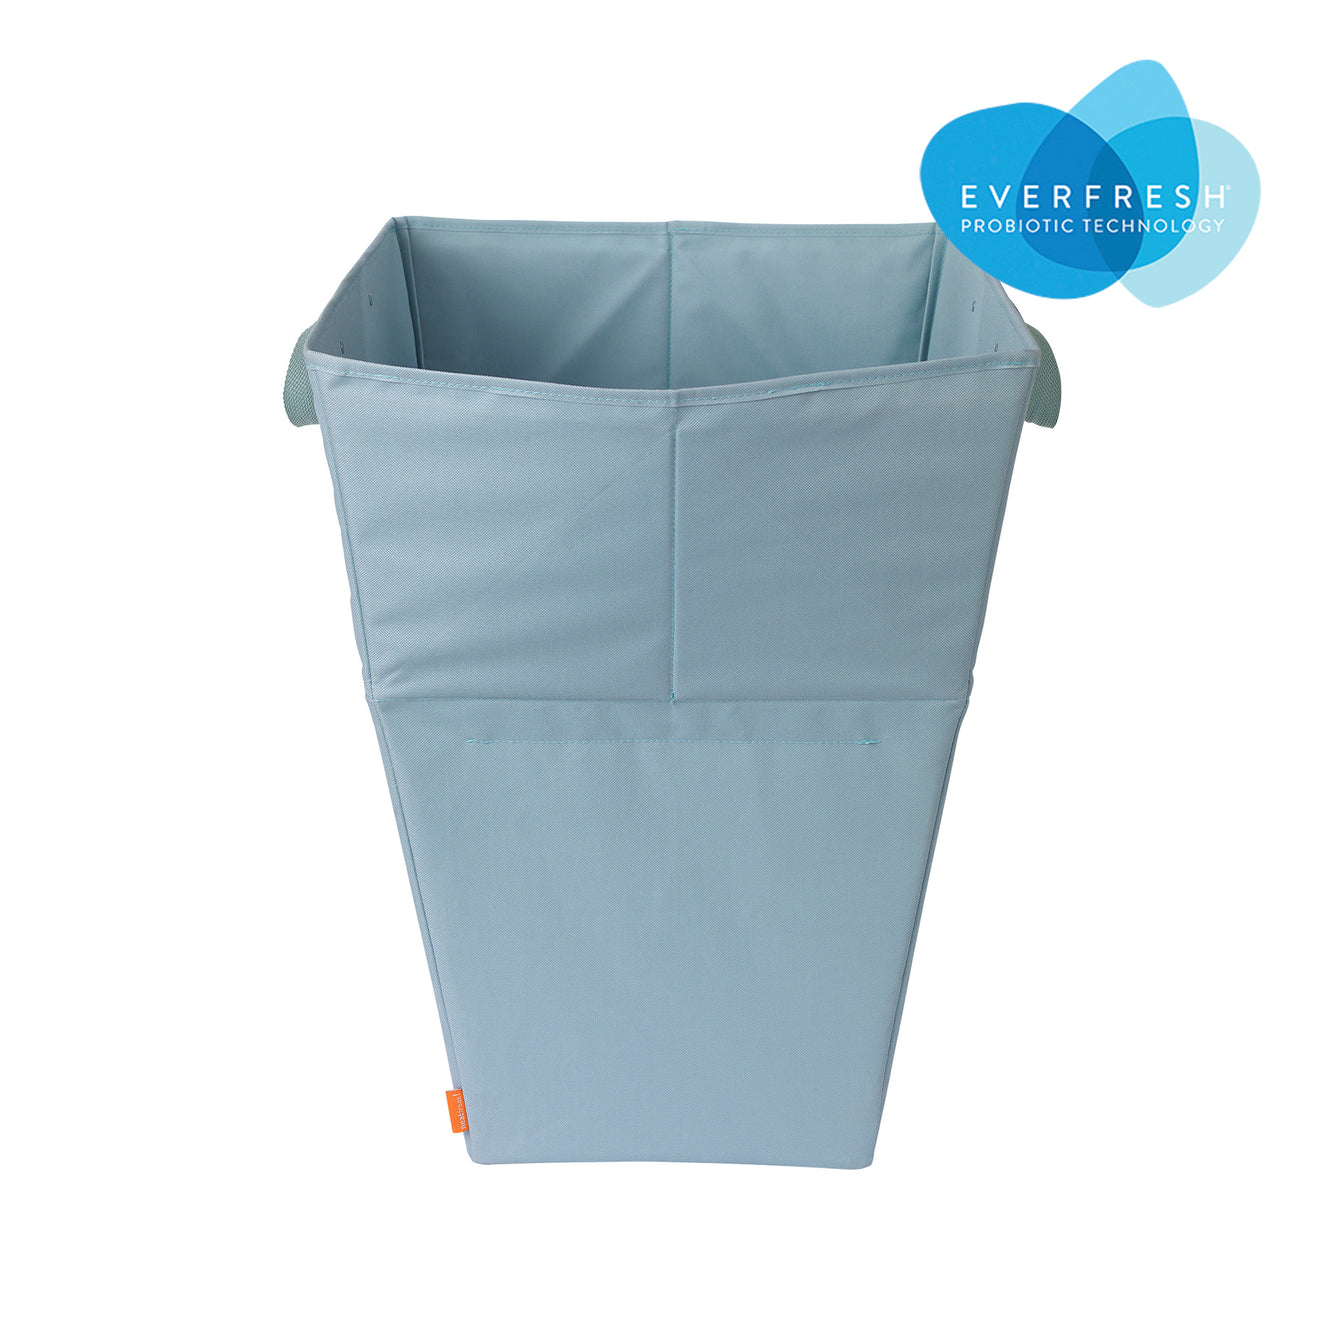 Easy-Open Lidded Fabric Laundry Basket with EVERFRESH® Odor Control - Style 3206